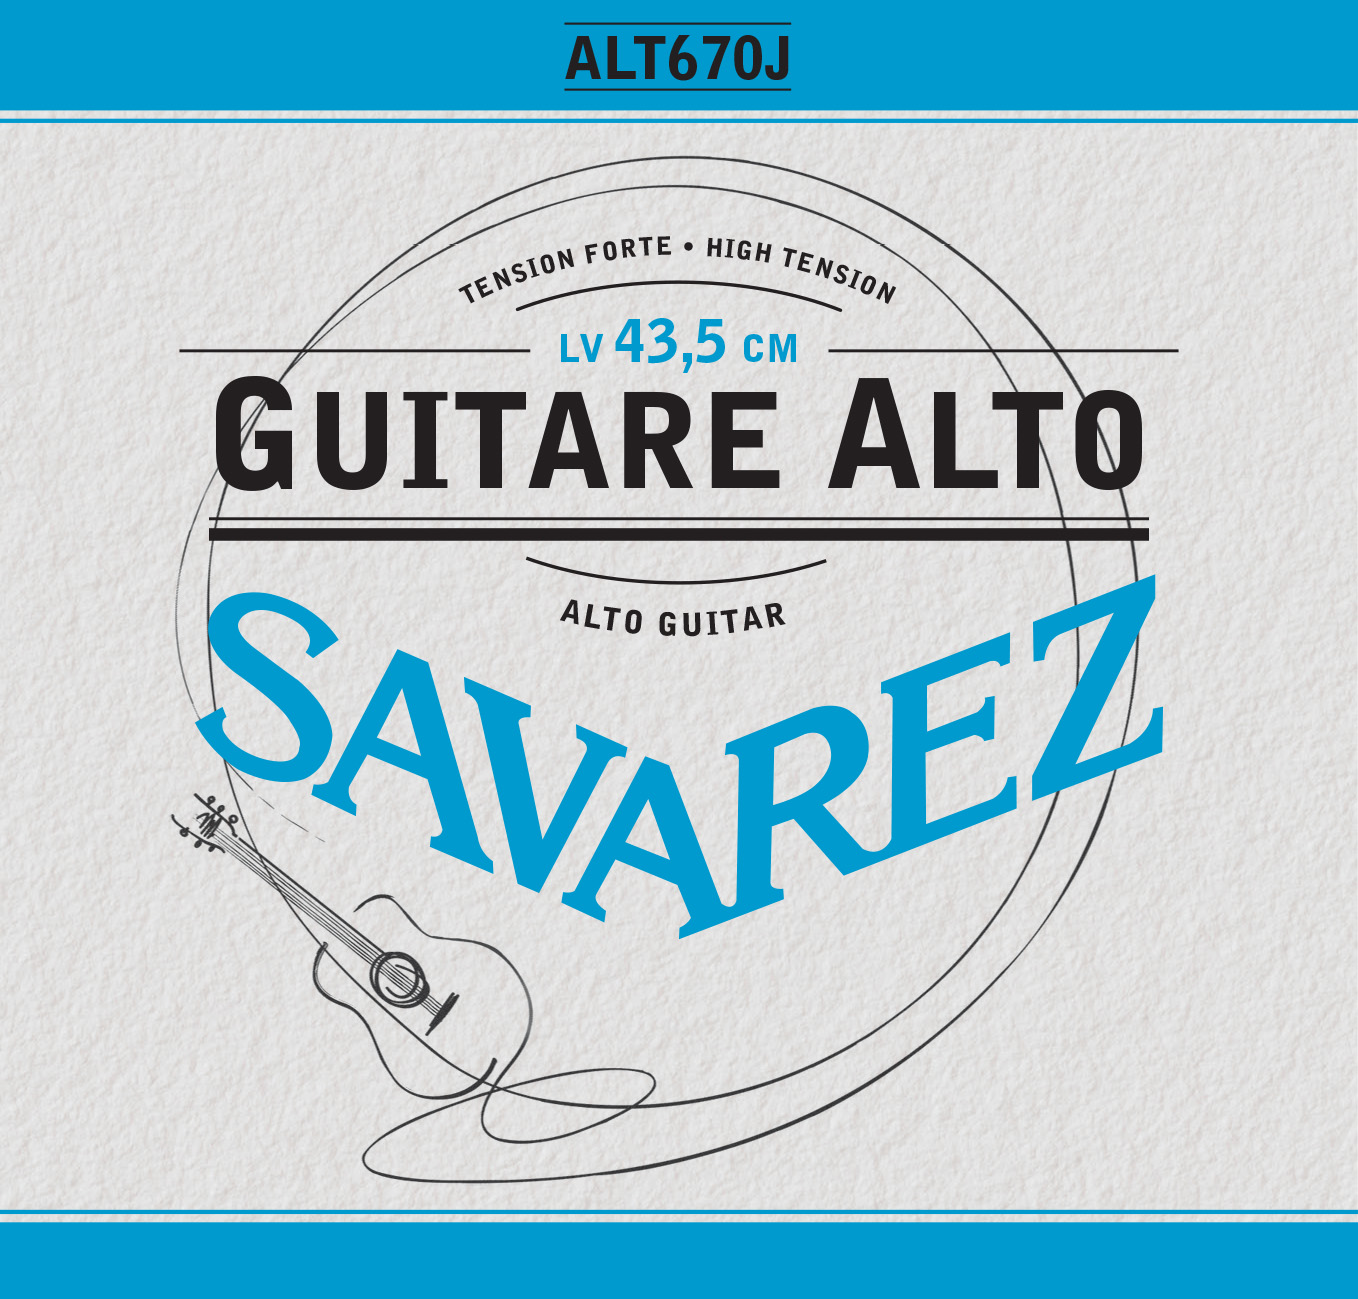 ALTO GUITAR HIGH TENSION ALT670J